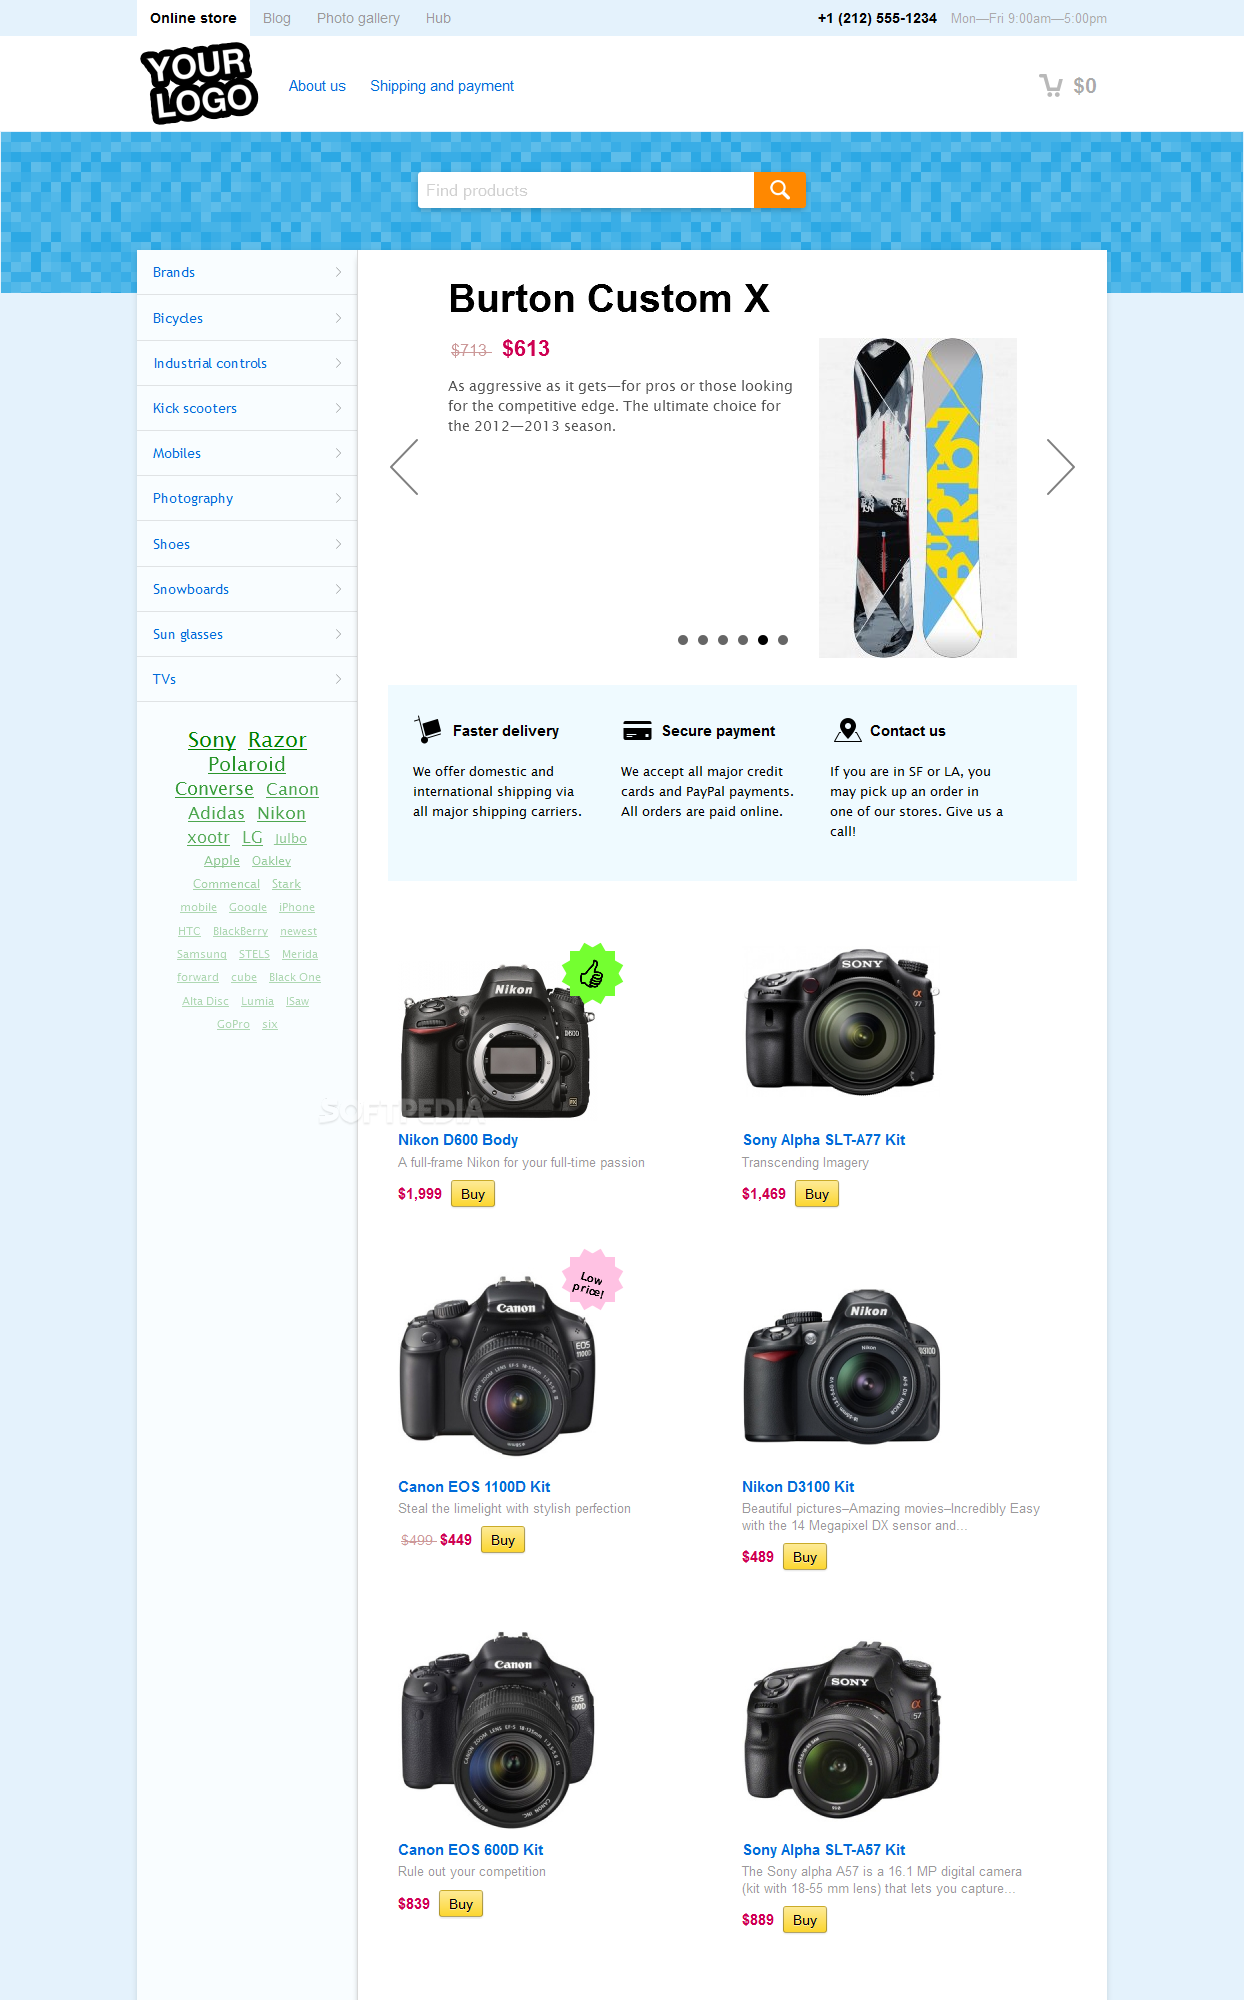 Shop-Script - The frontend provides all the pages and features you'd expect from an online store